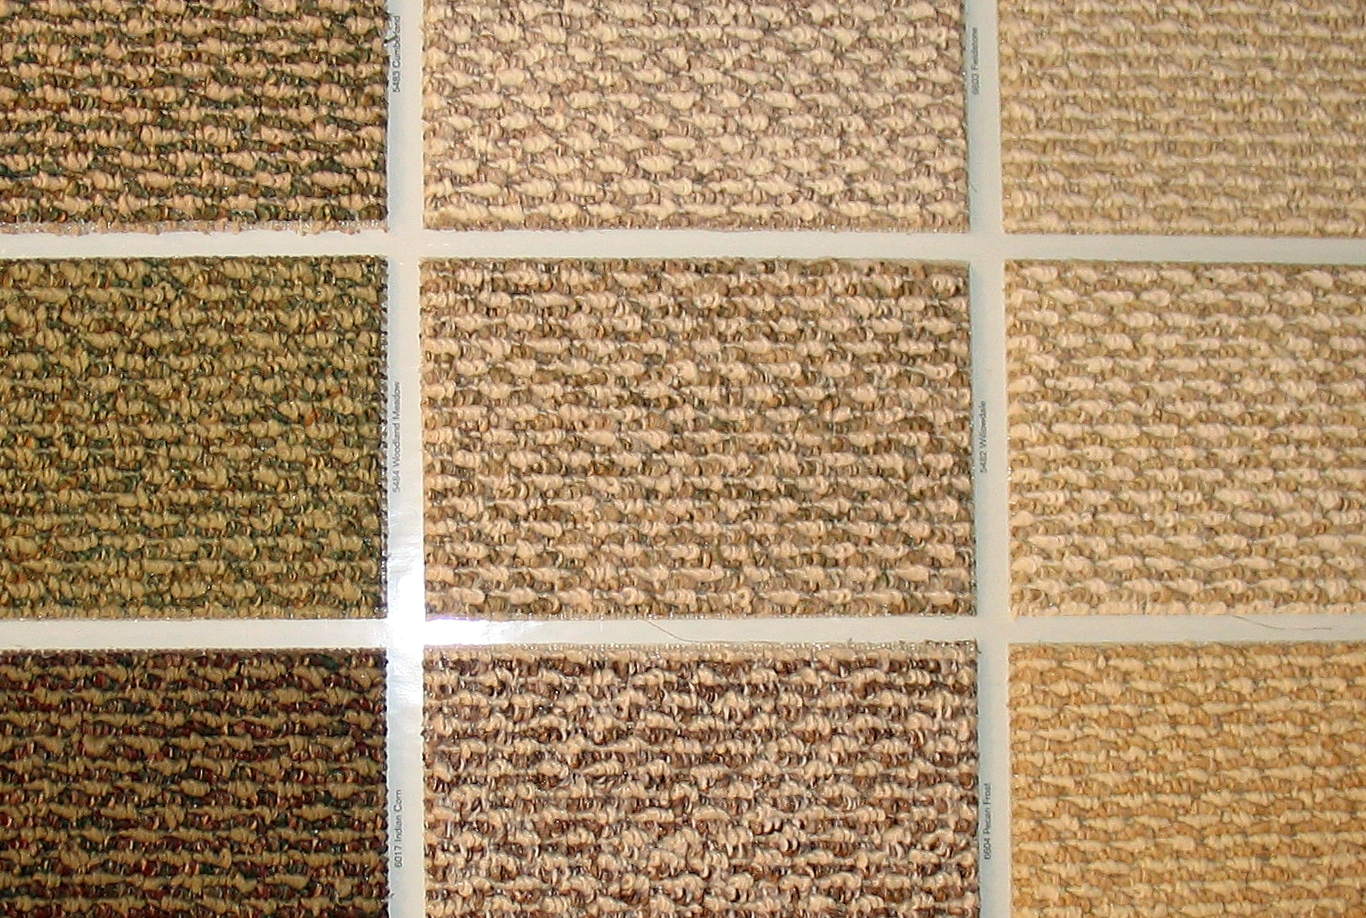 Berber Carpet Colors http://commons.wikimedia.org/wiki/File:Swatches_of_berber_carpet.jpg